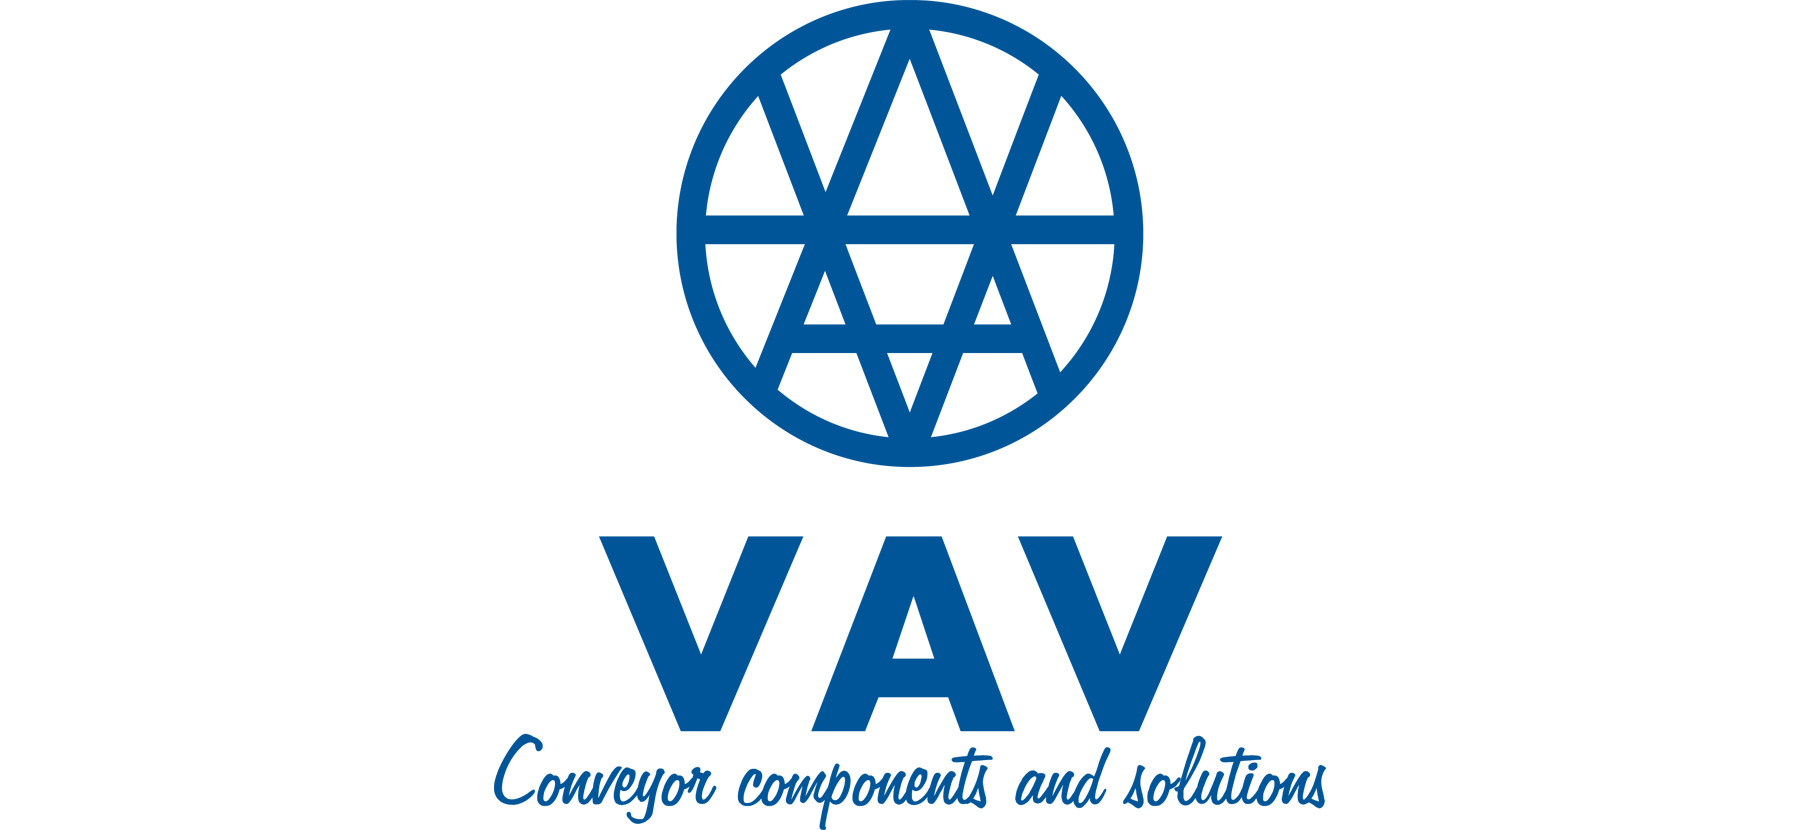 V.A.V. Conveyor components and solutions